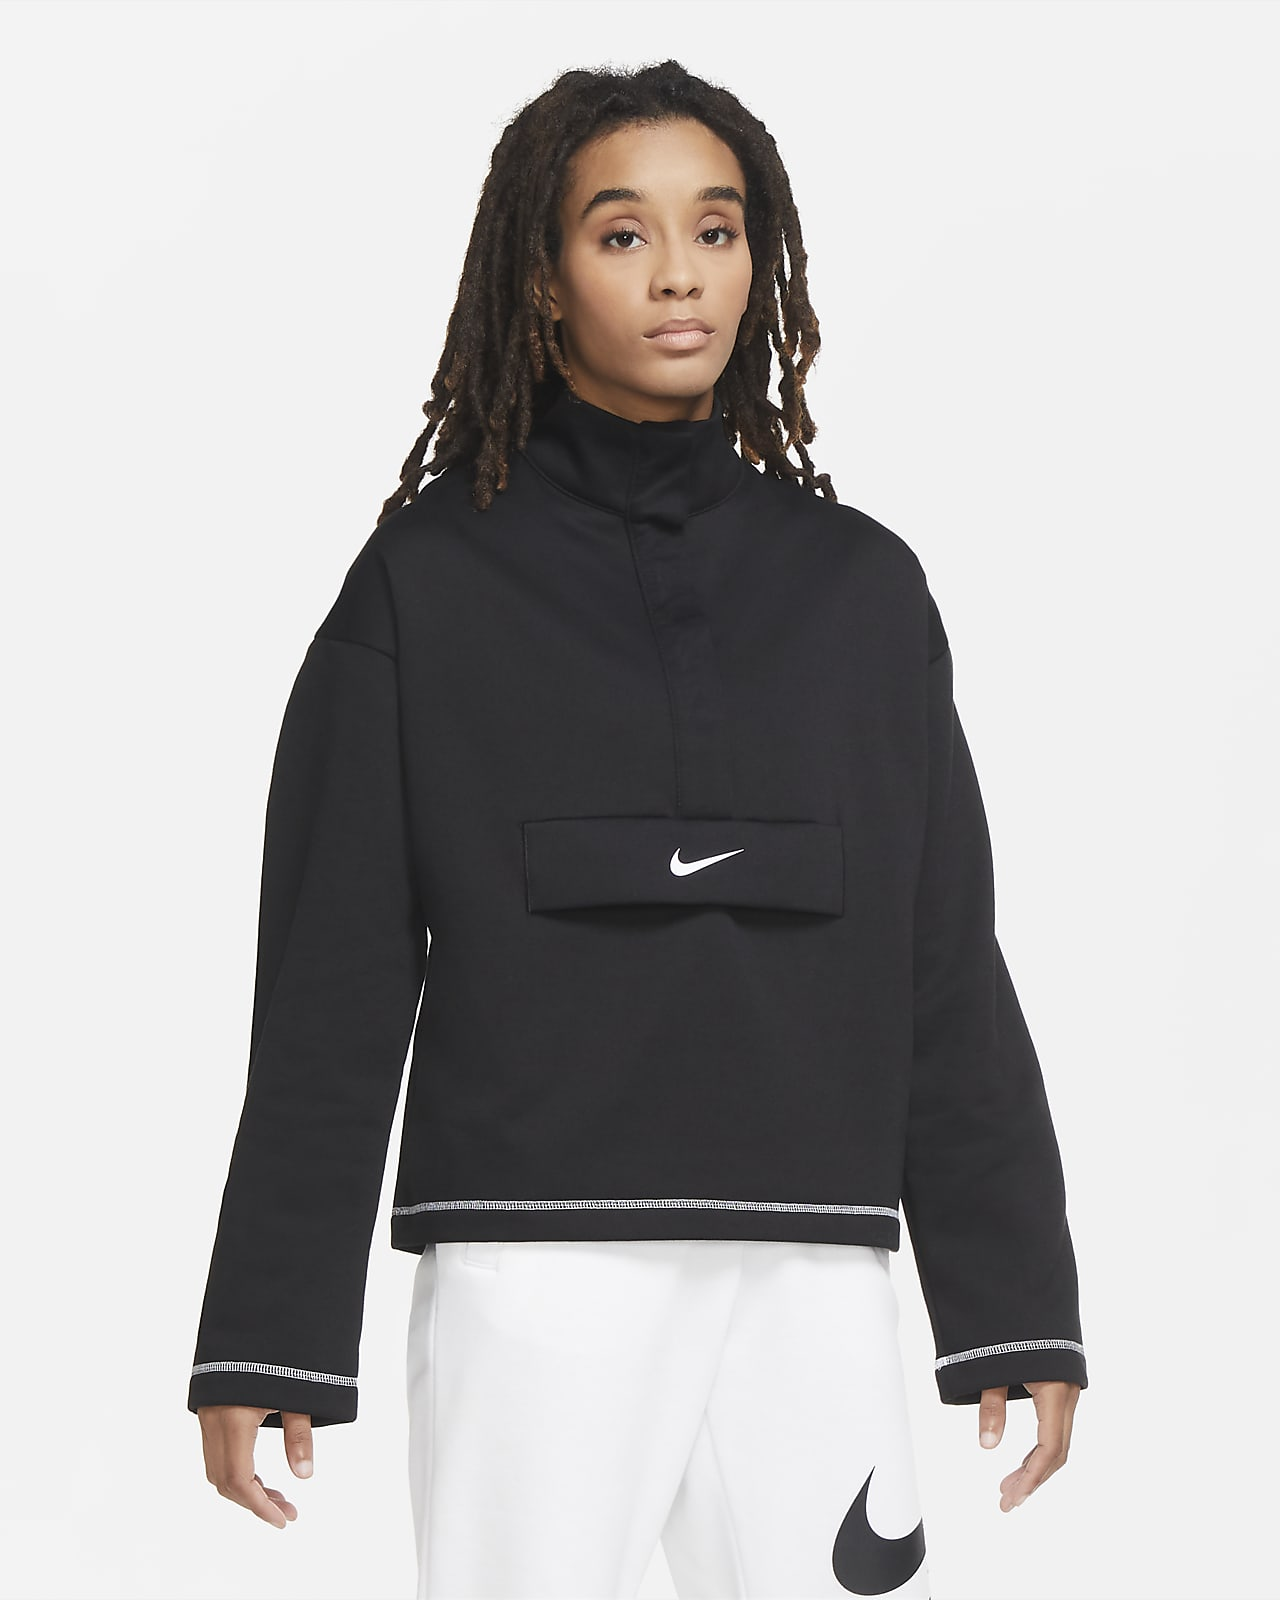 Nike Sportswear Swoosh Women's 1/2-Zip Fleece Top